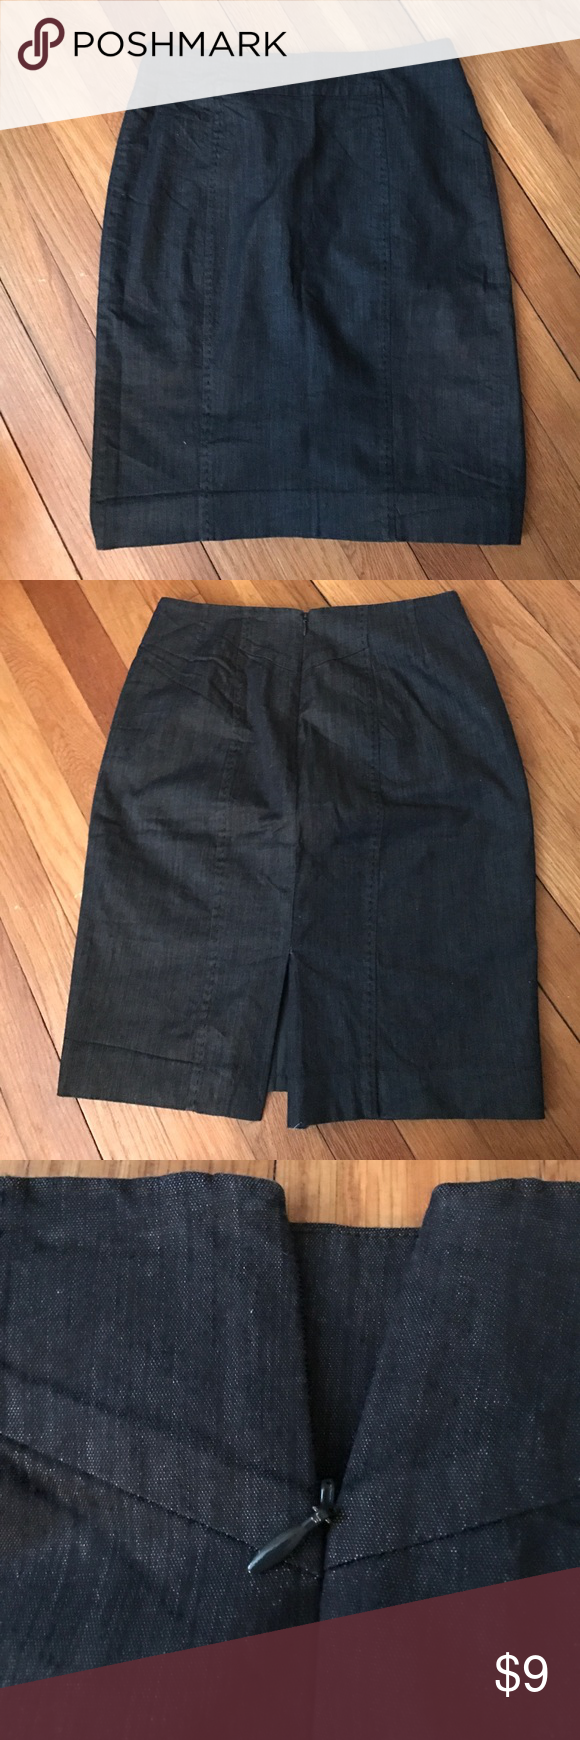 LOFT  size 0P Dark Blue Pencil Skirt Loft Pencil Skirt. Dark blue. Looks like light weight denim. Pair it with a number of combinations for many kids of outfits. Perfect for work or casual wear. In excellent condition! LOFT Skirts Pencil